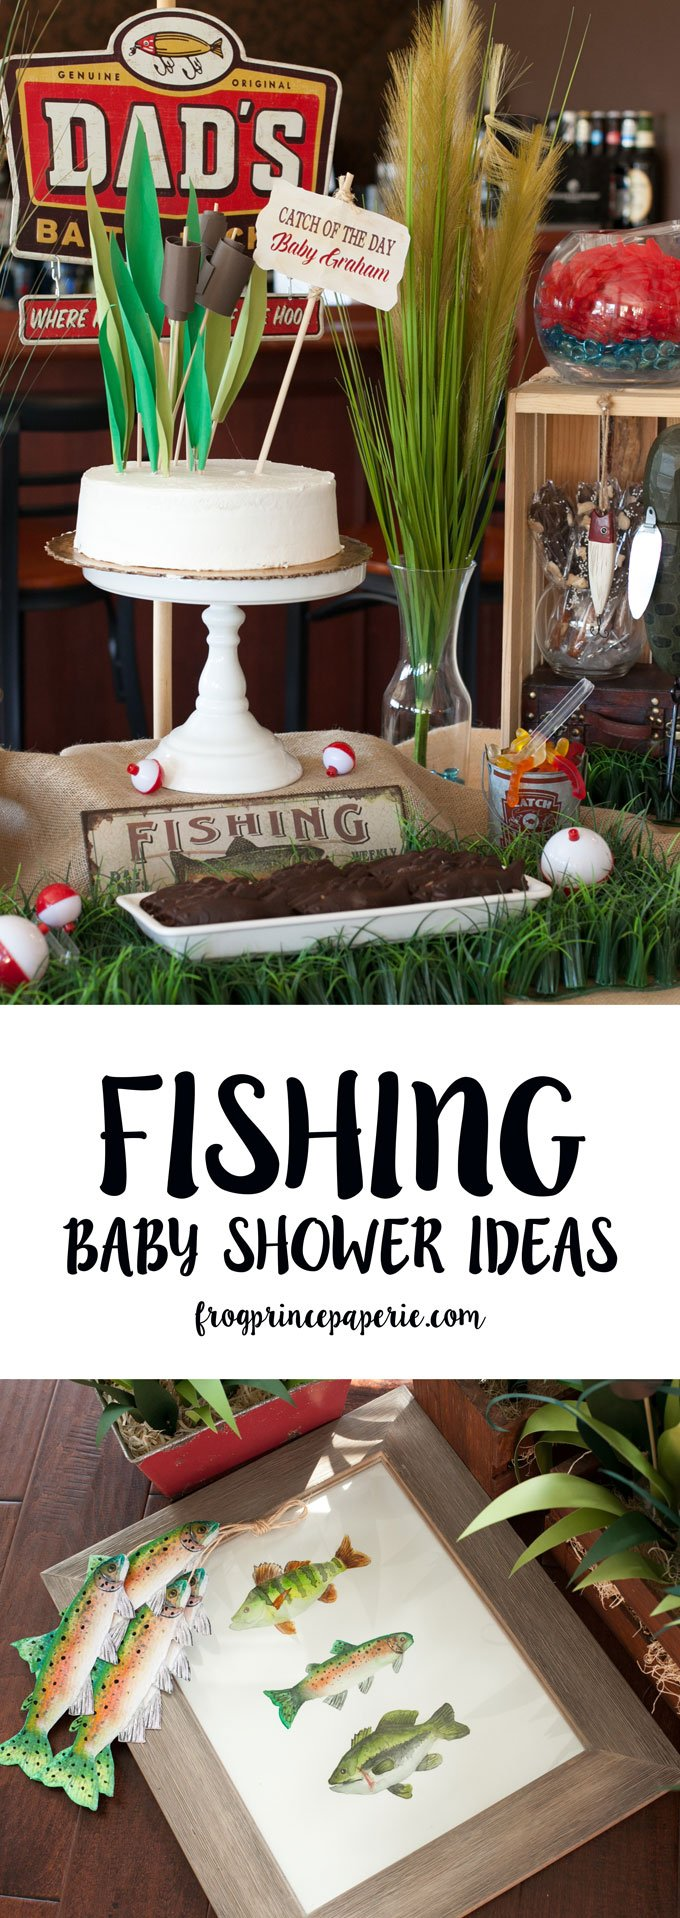 Fishing baby shower DIY ideas